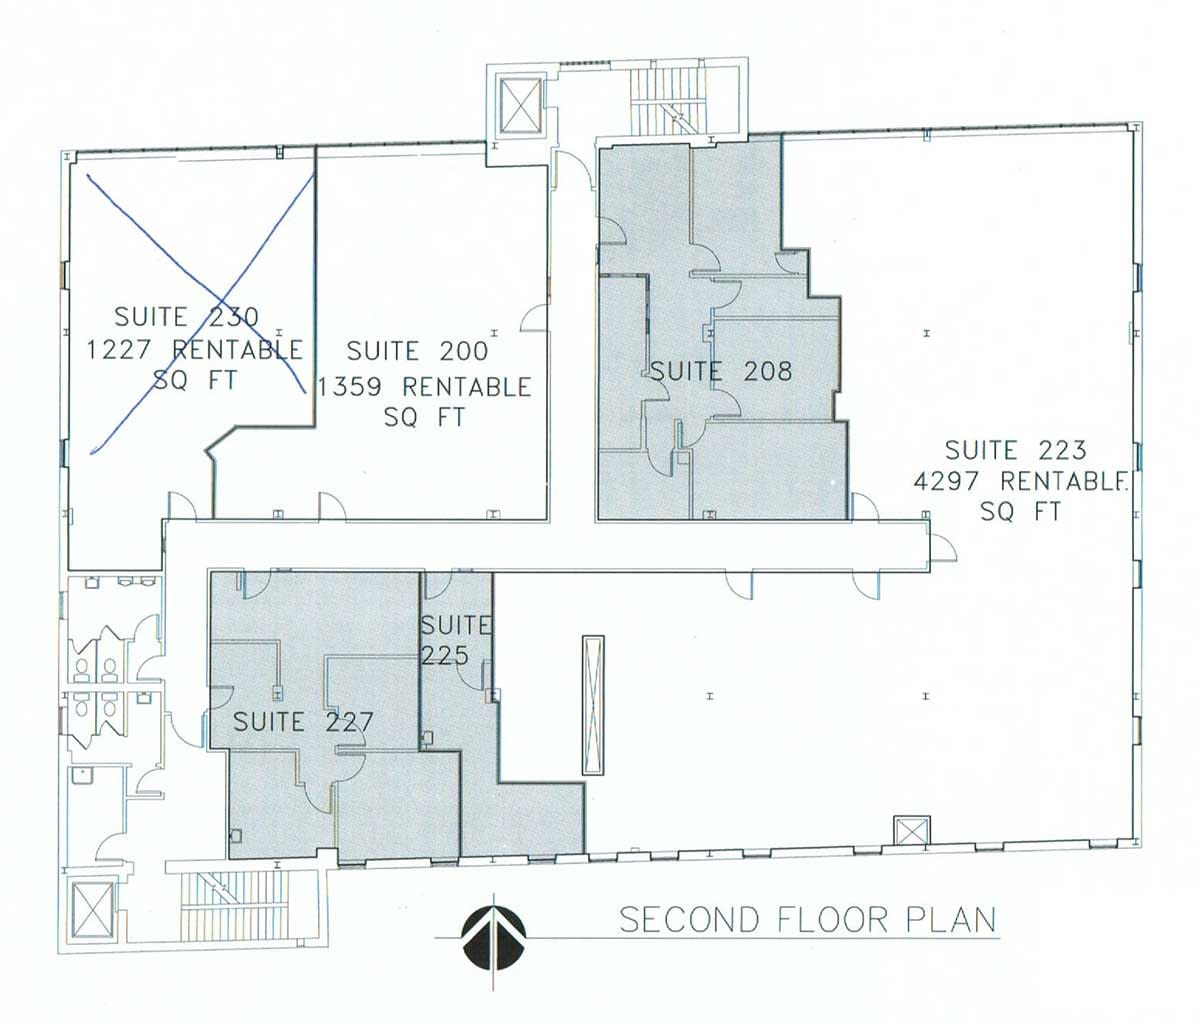 SecondFloorPlan